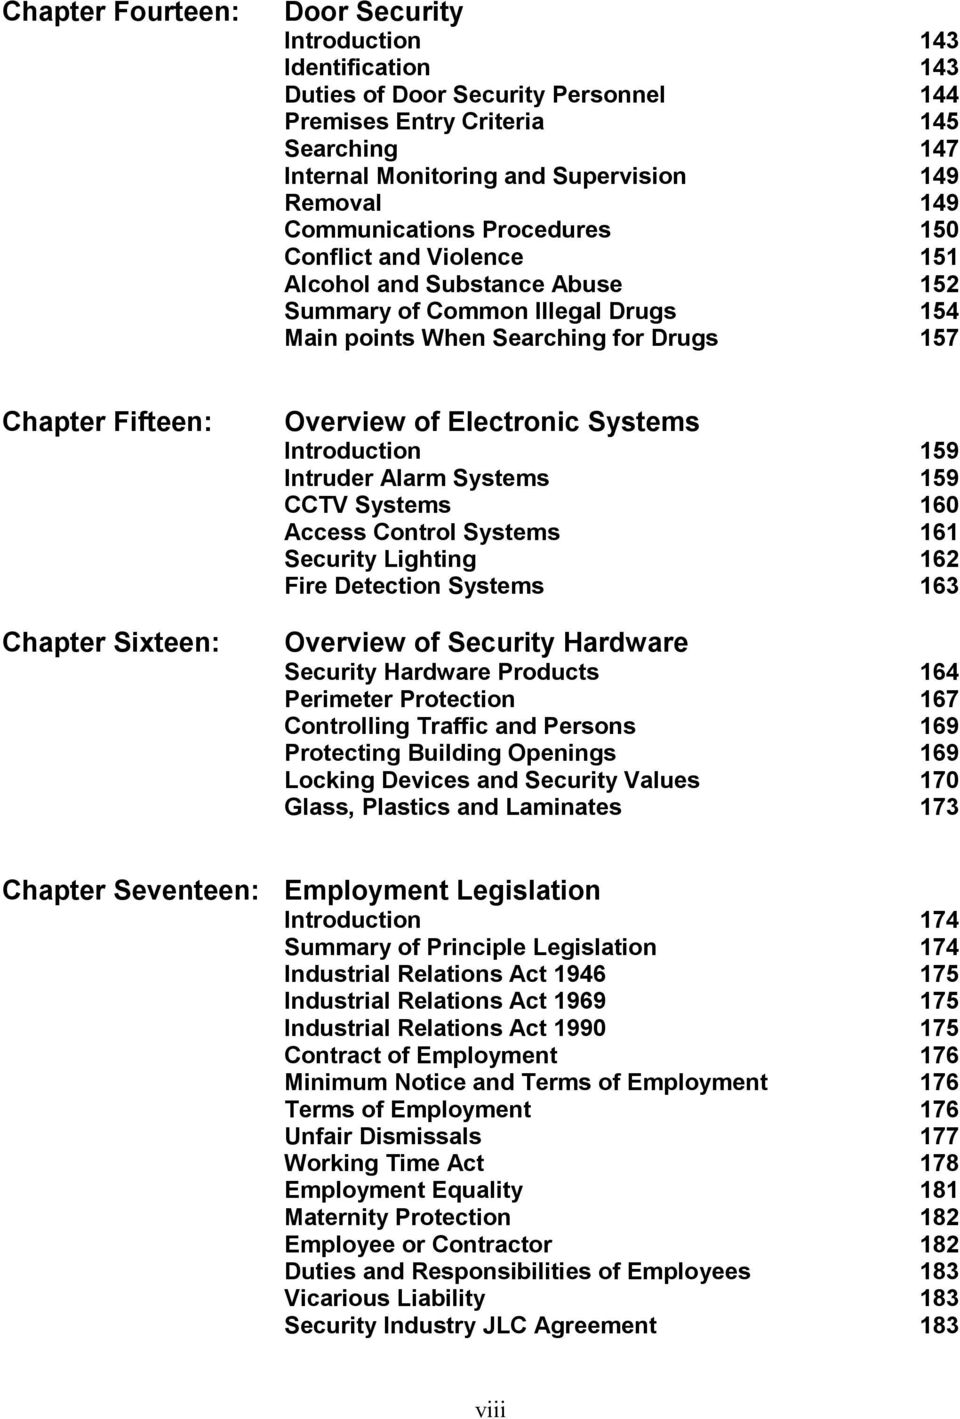 Overview of Electronic Systems Introduction 159 Intruder Alarm Systems 159  CCTV Systems 160 Access Control Systems